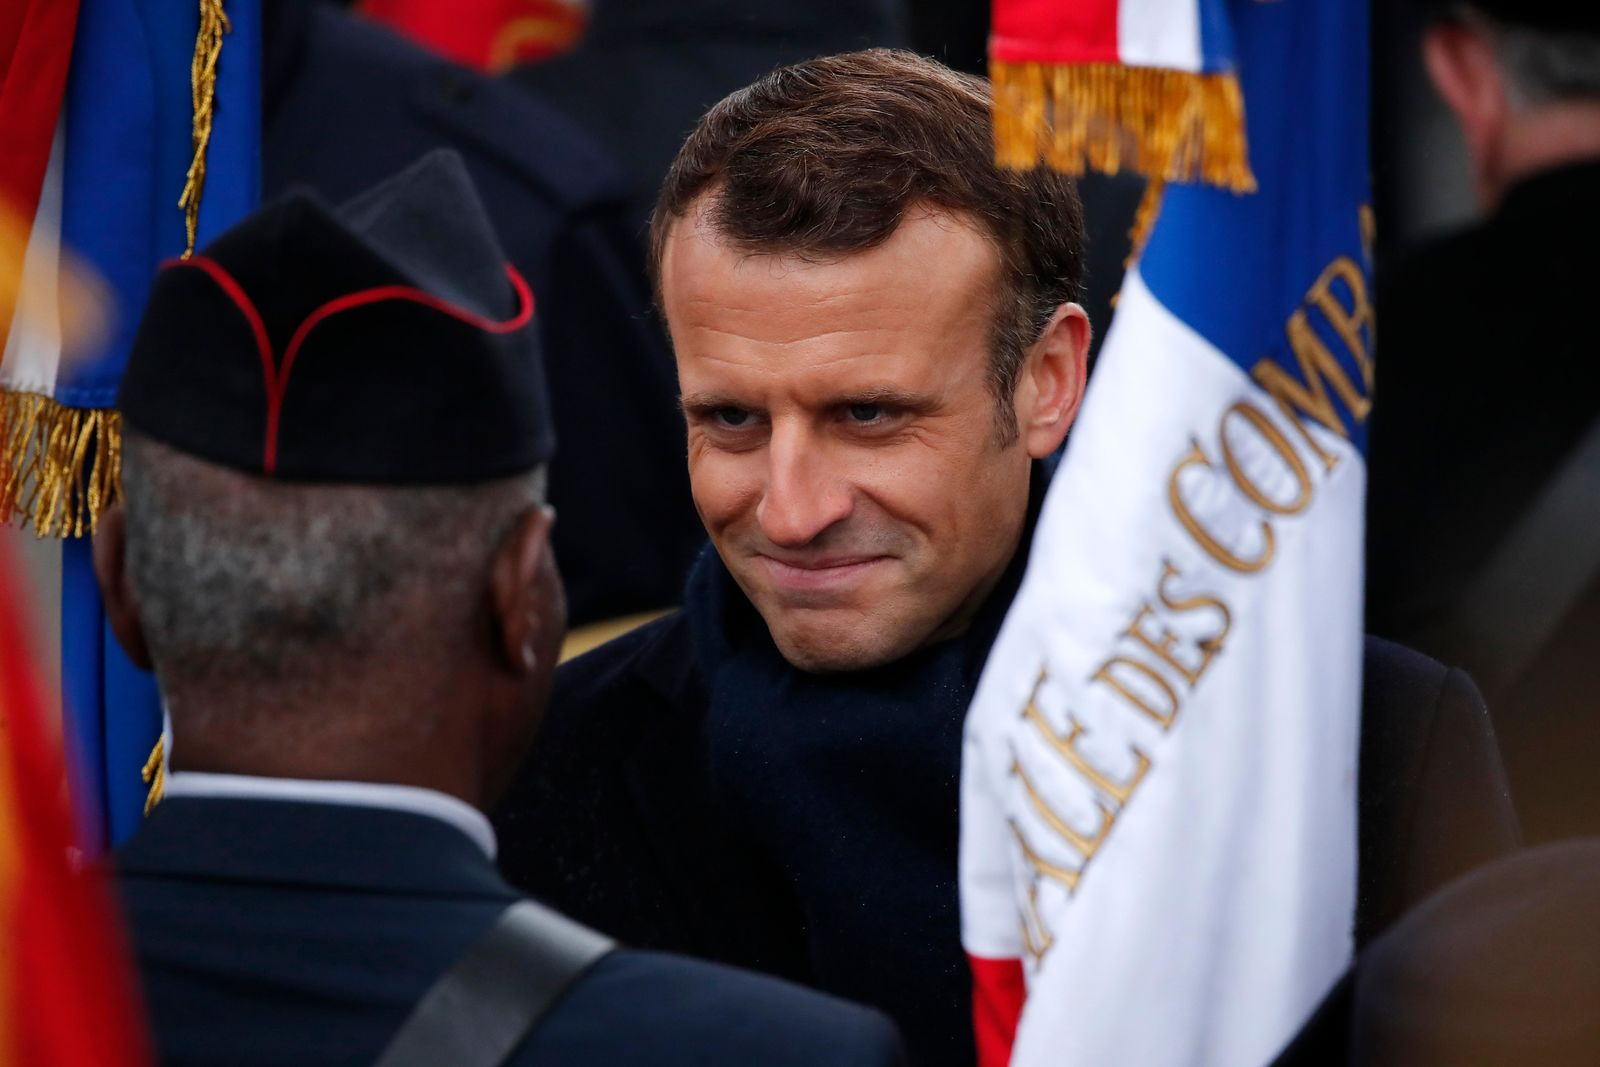 French President Emmanuel Macron meets veterans under the Arc de Triomphe during commemorations marking the 101st anniversary of the 1918 armistice, ending World War I, Monday Nov. 11, 2019 in Paris (AP Photo/Francois Mori, Pool)